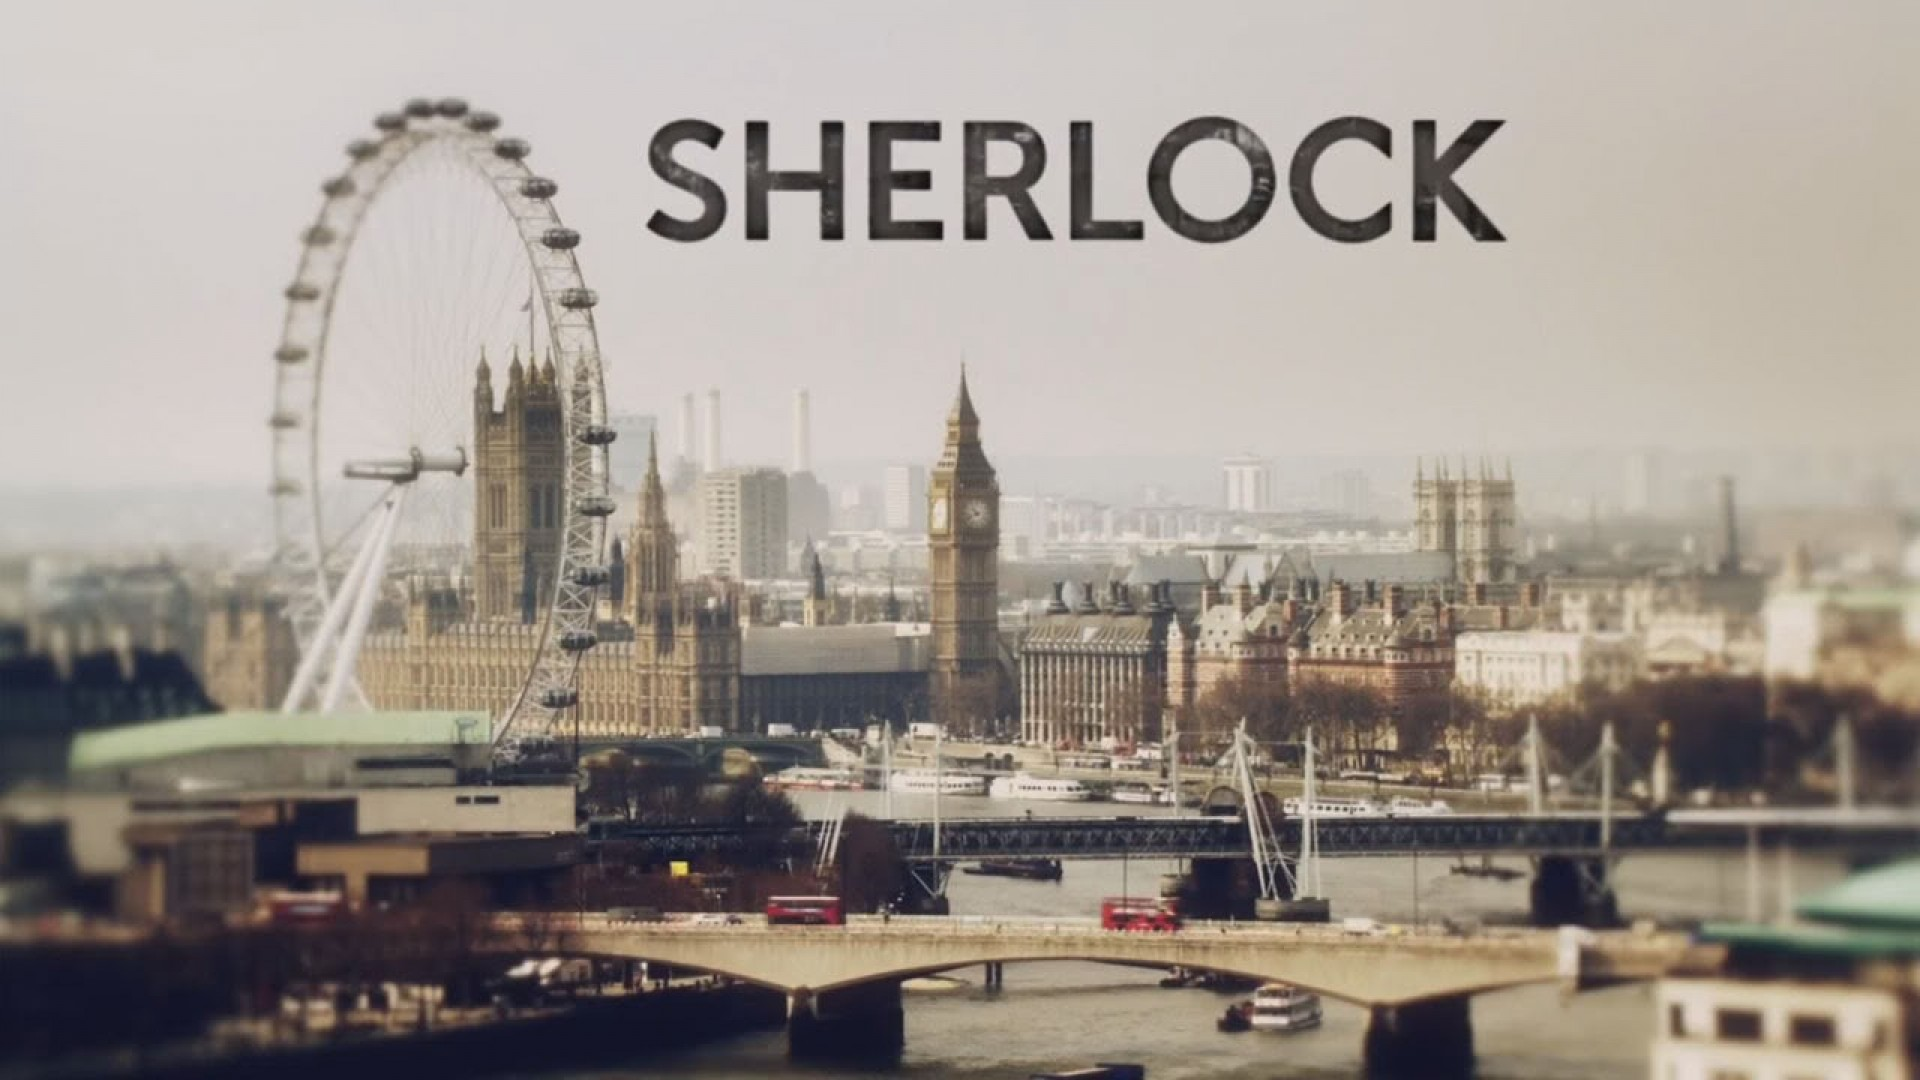 London Wallpapers HD sherlock